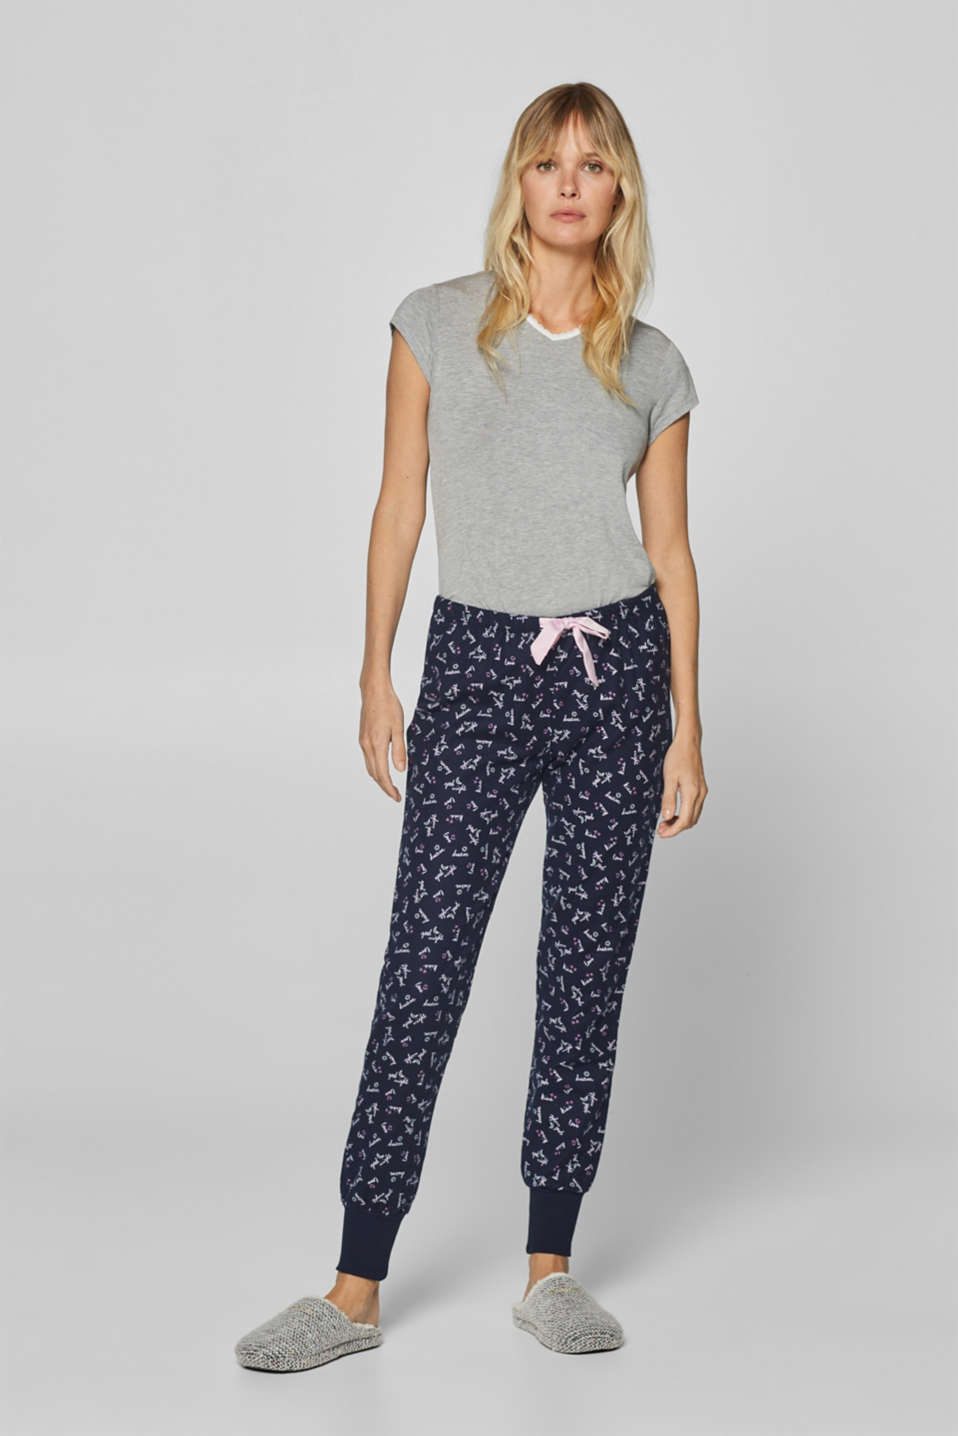 Esprit - Flannel pyjama bottoms, 100% cotton